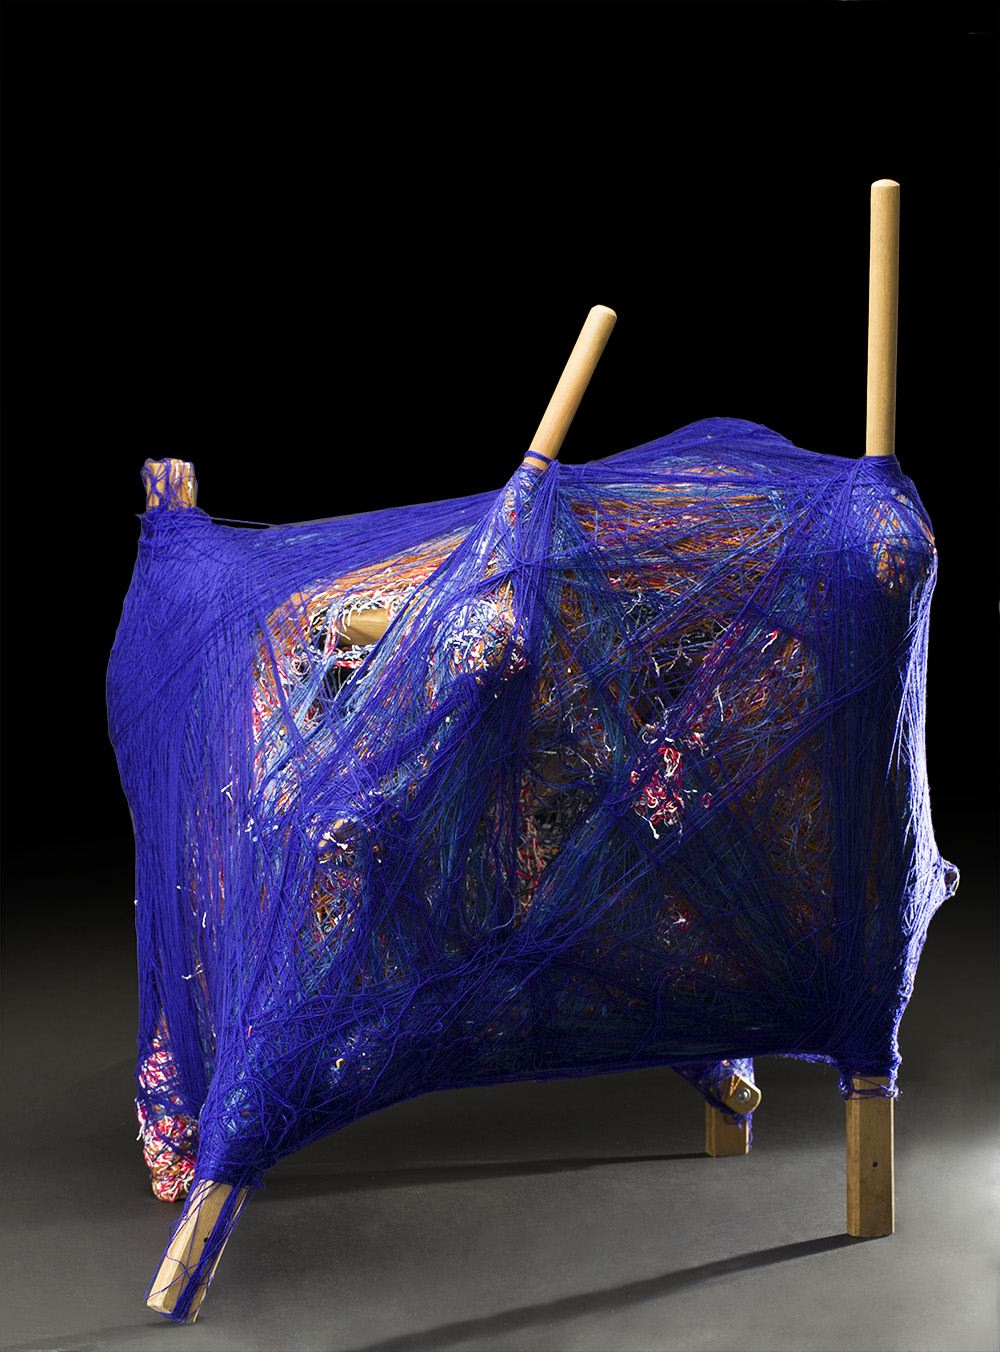 Tony Pedemonte    Untitled  , 2011 Fiber and wood 19 x 21 x 34 inches 48.3 x 53.3 x 86.4 cm TPed 22